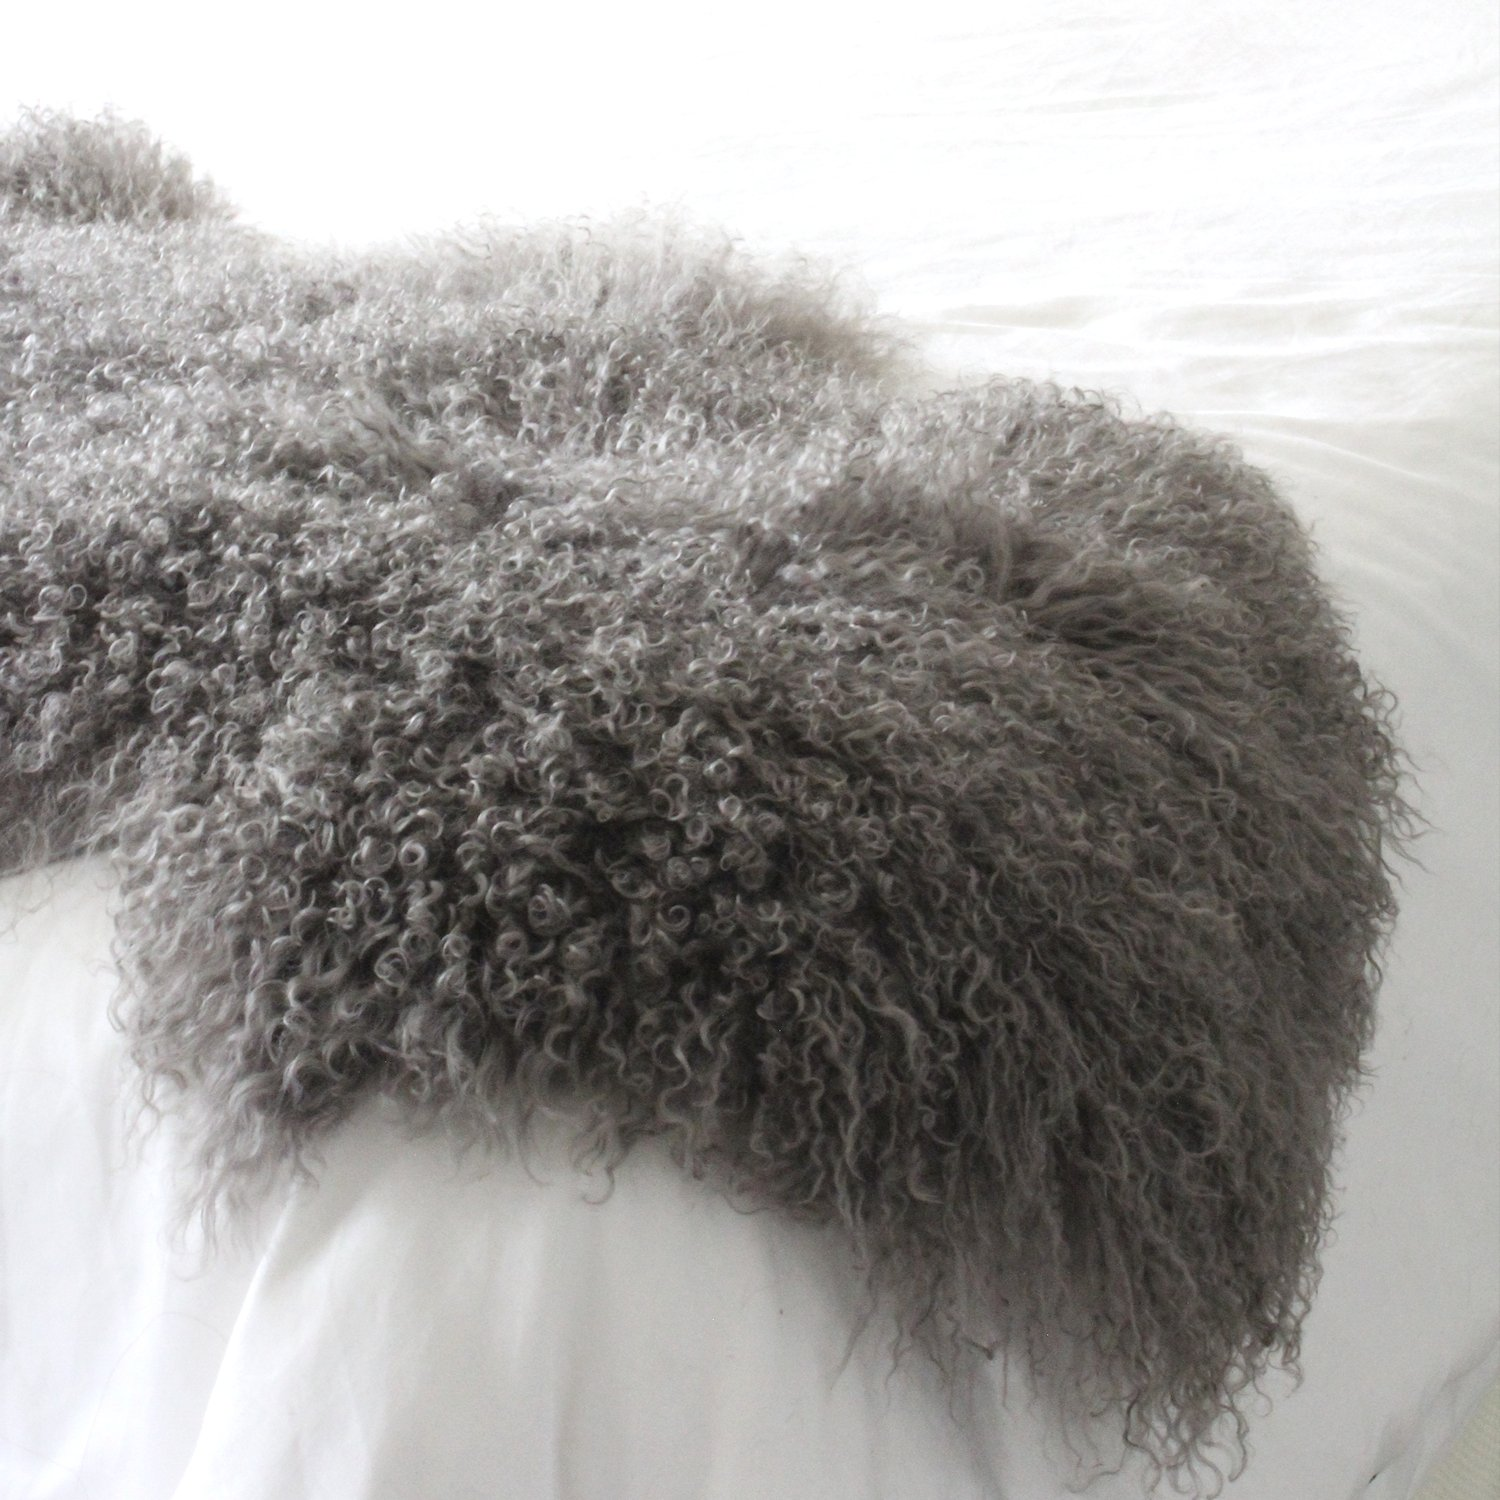 genuine grey Tibetan Mongolian Sheepskin lambskin bed scarf runner throw 24x71'' / 60x180cm single double queen bed by ELuxury Home